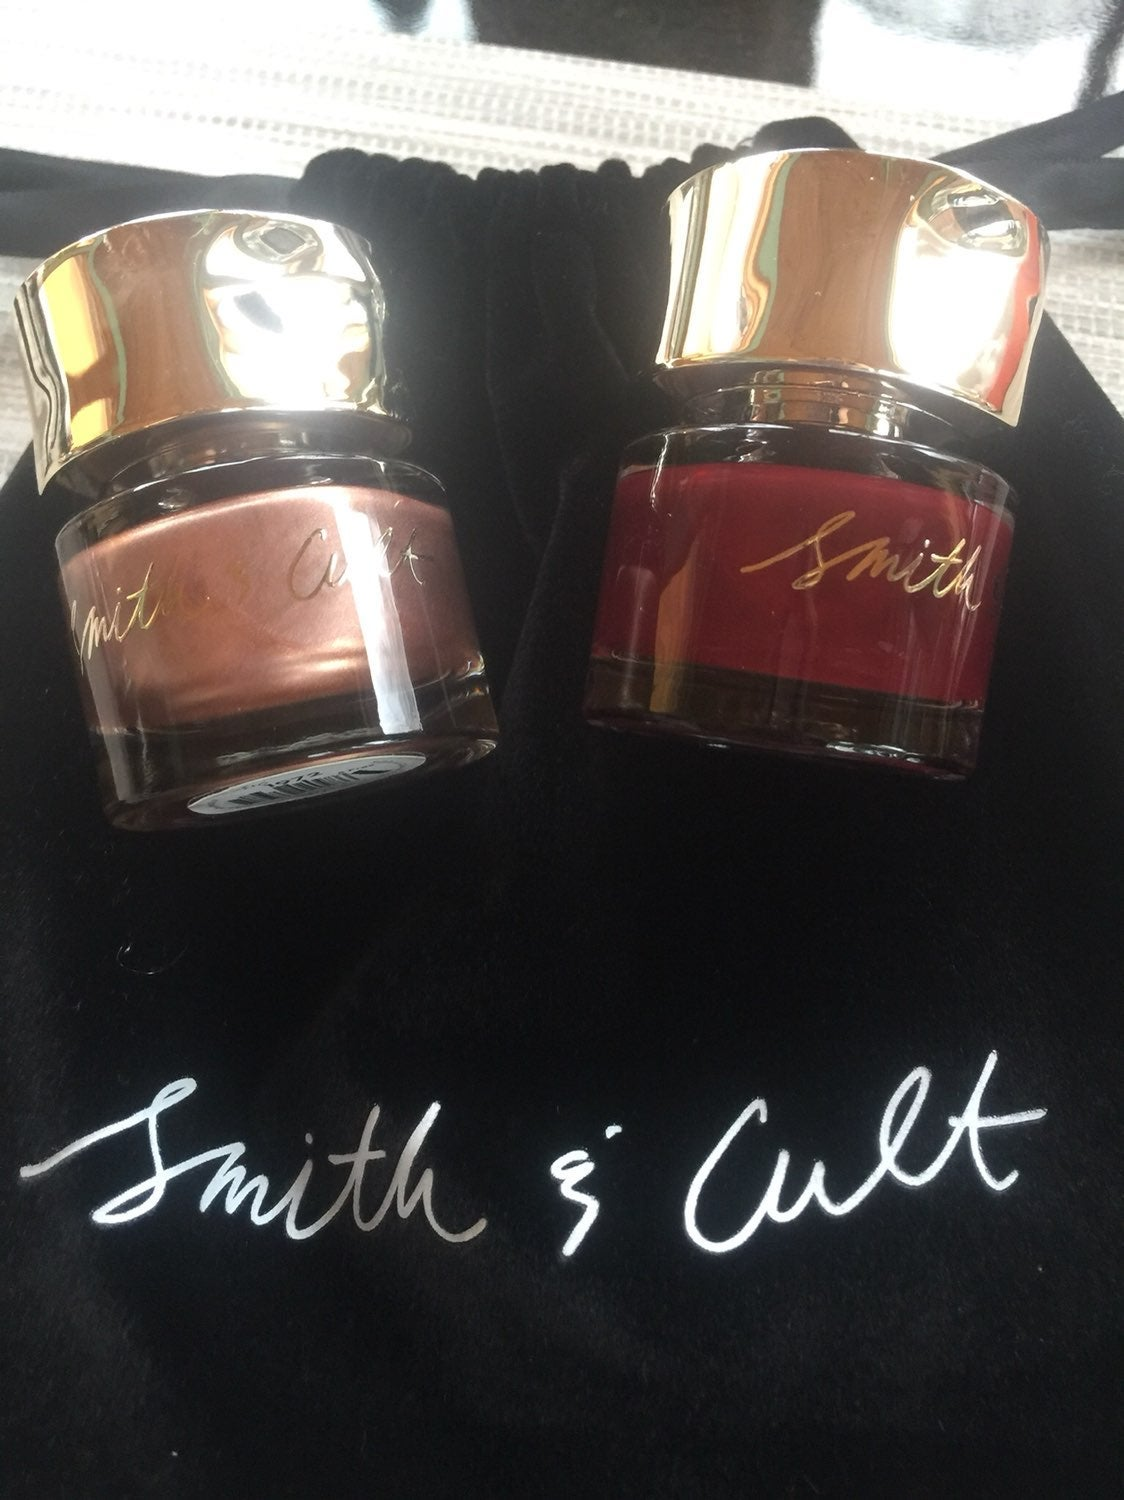 Smith & cult holiday polish set